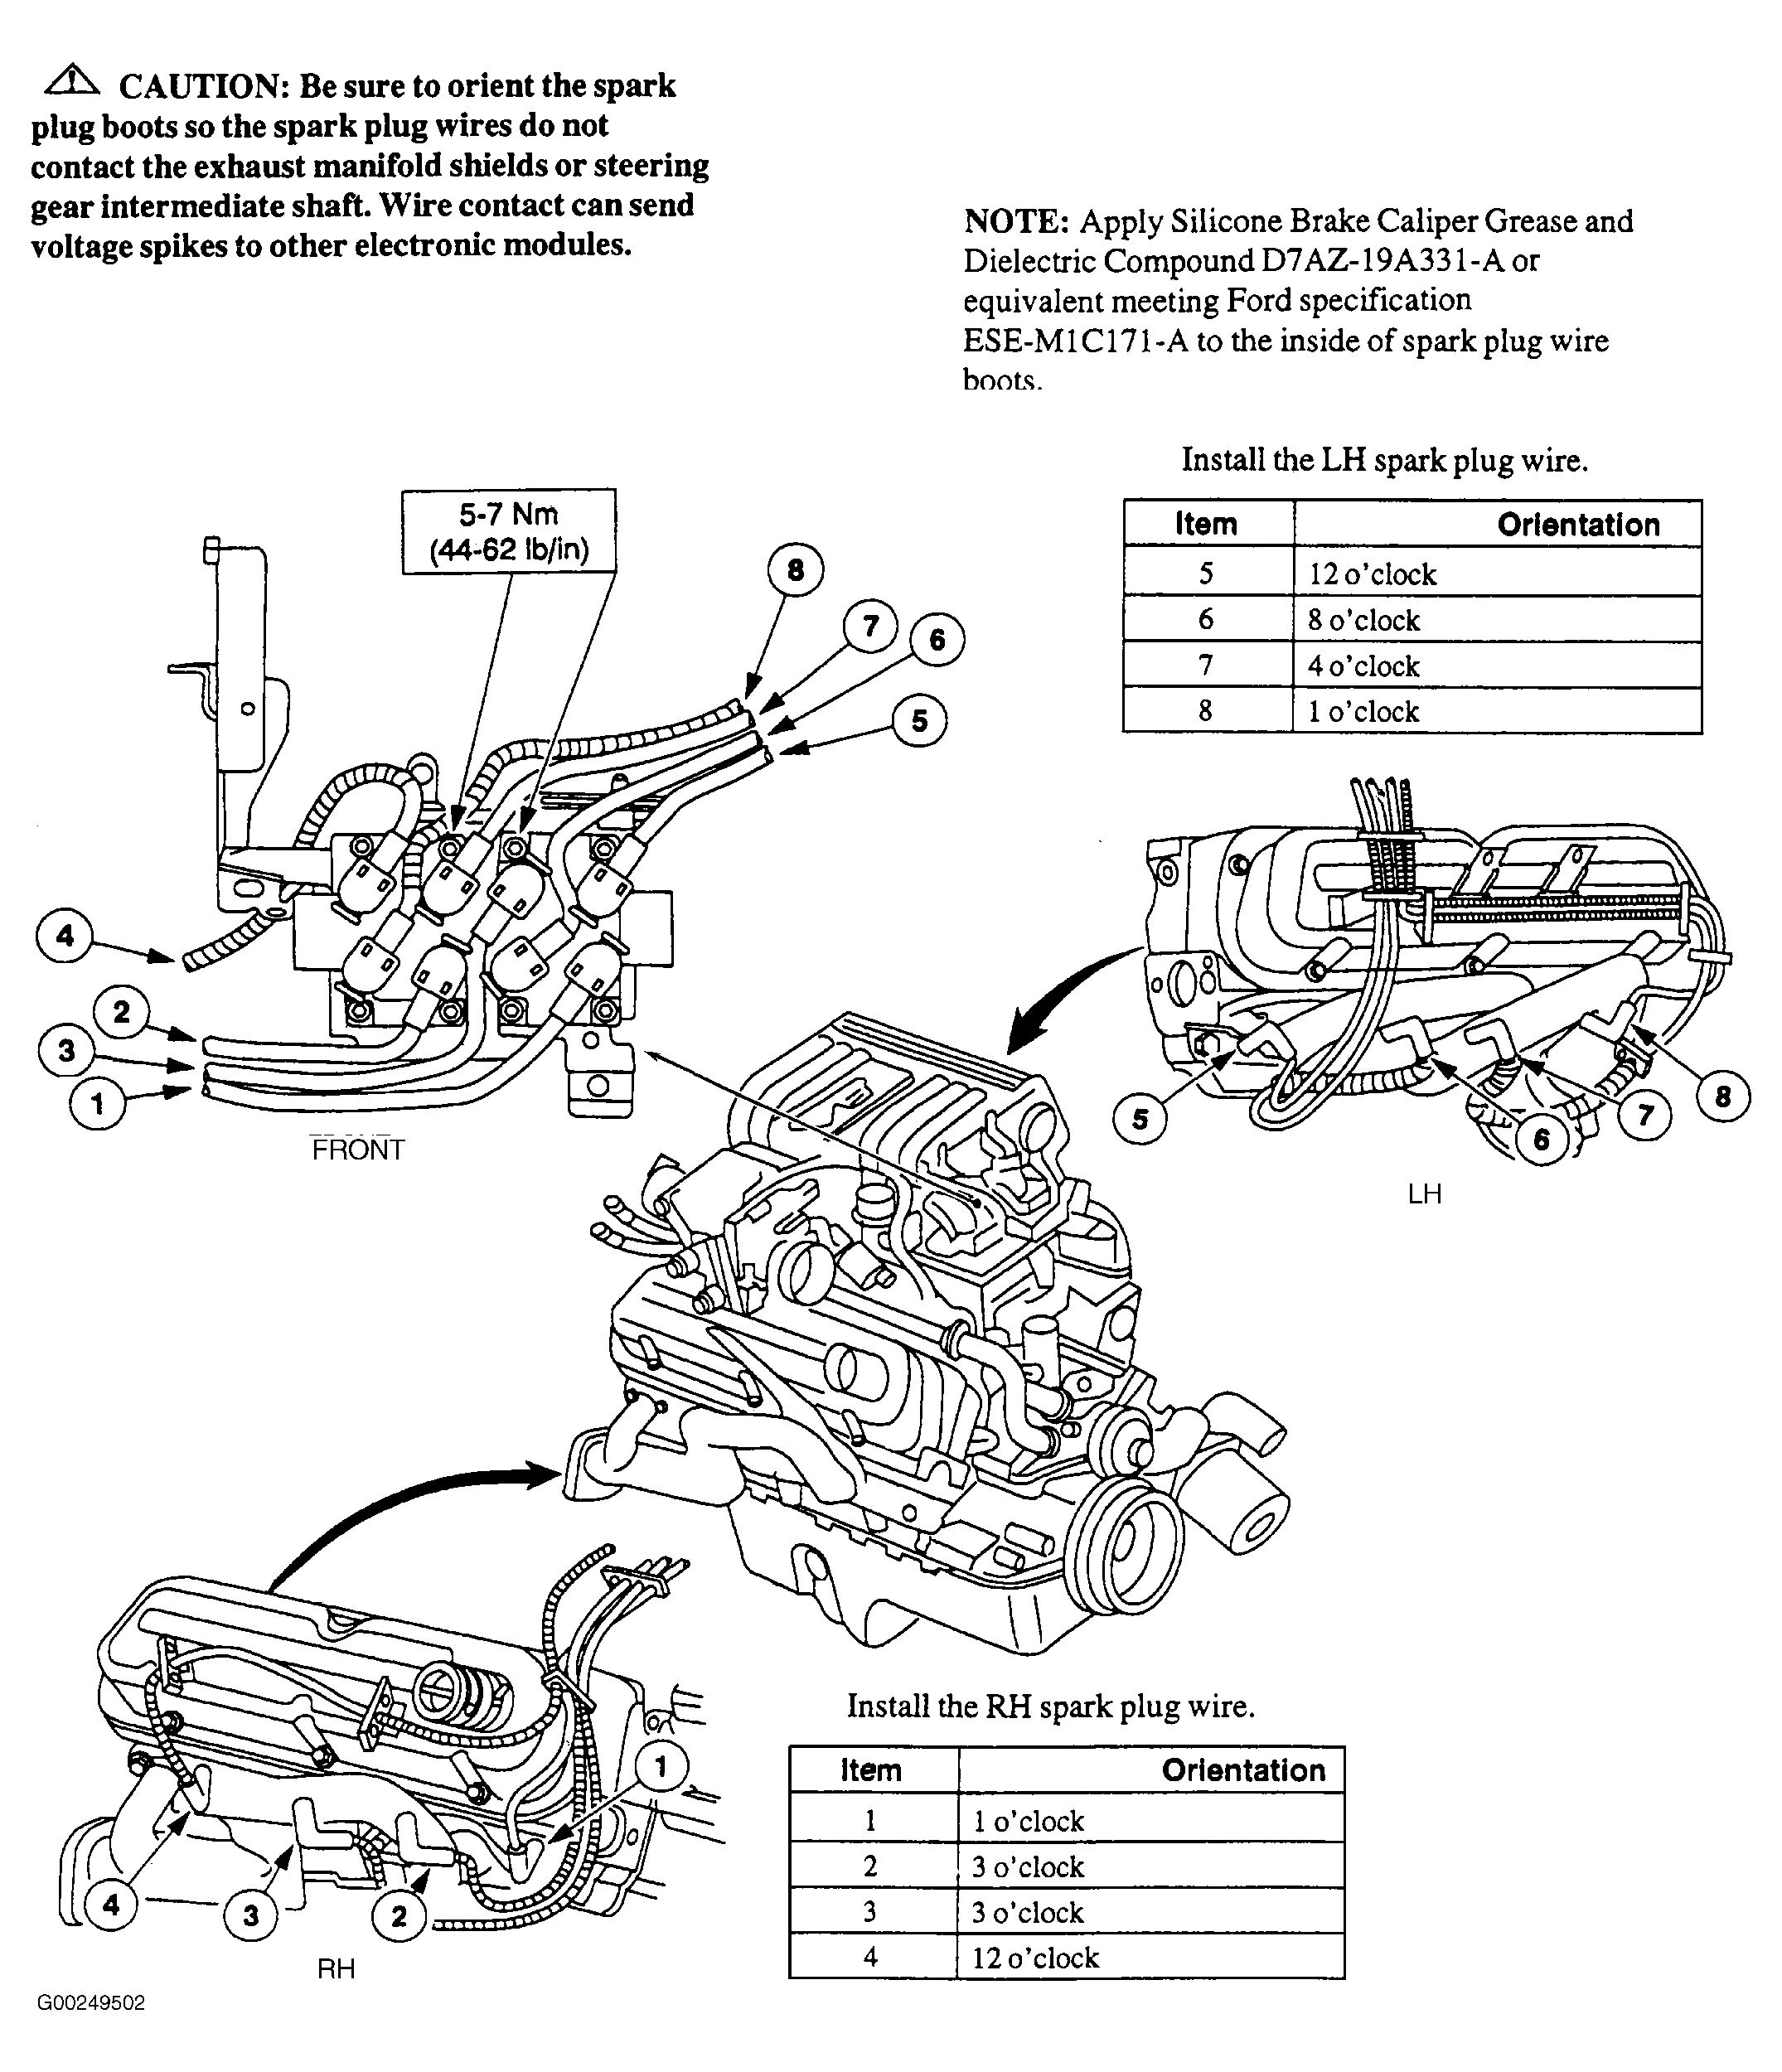 1997 Ford F 150 4 2 Engine Diagram F150 6 Spark Plug Wiring Best Of Image Rh Mainetreasurechest Com 2000 Ltr